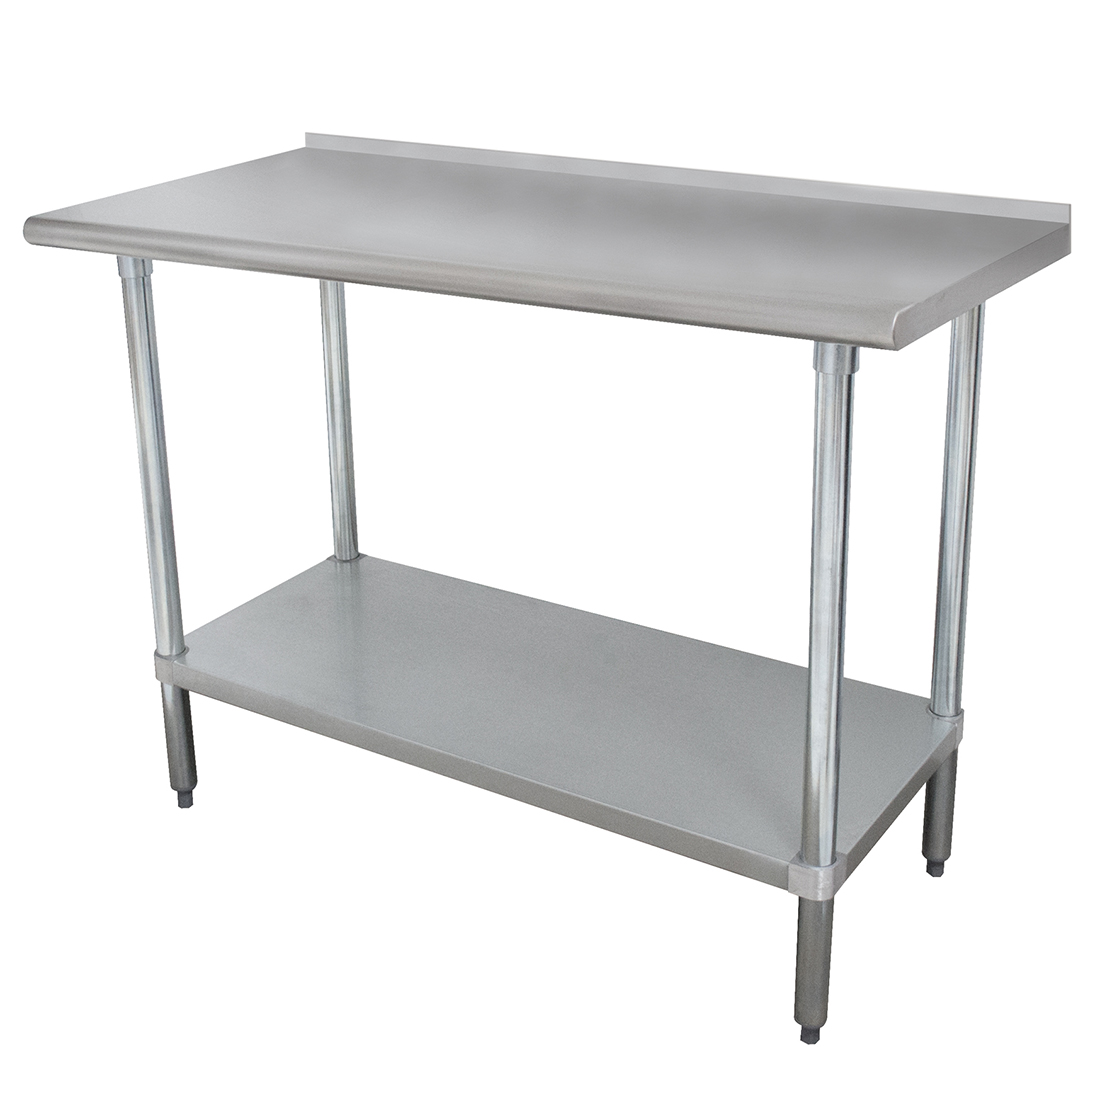 Advance Tabco FMG-248 work table,  85